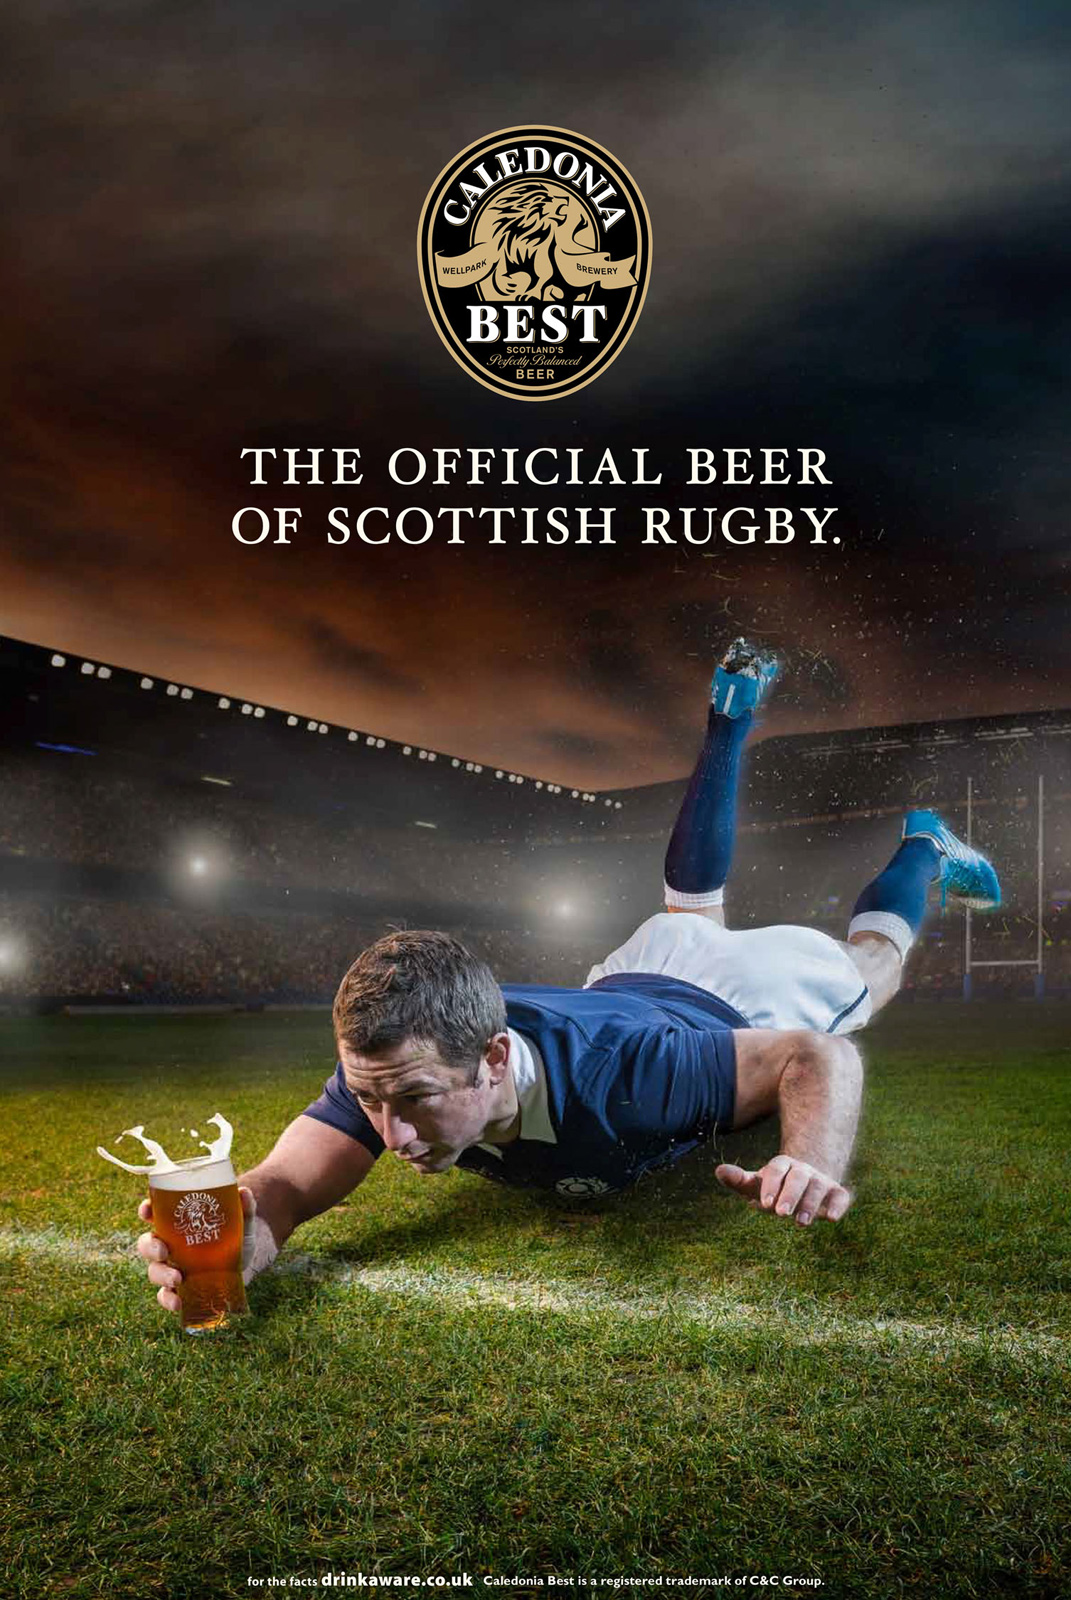 Advert for Beer Company featuring Greig Laidlaw Scottish rugby player and captain at Murrayfield